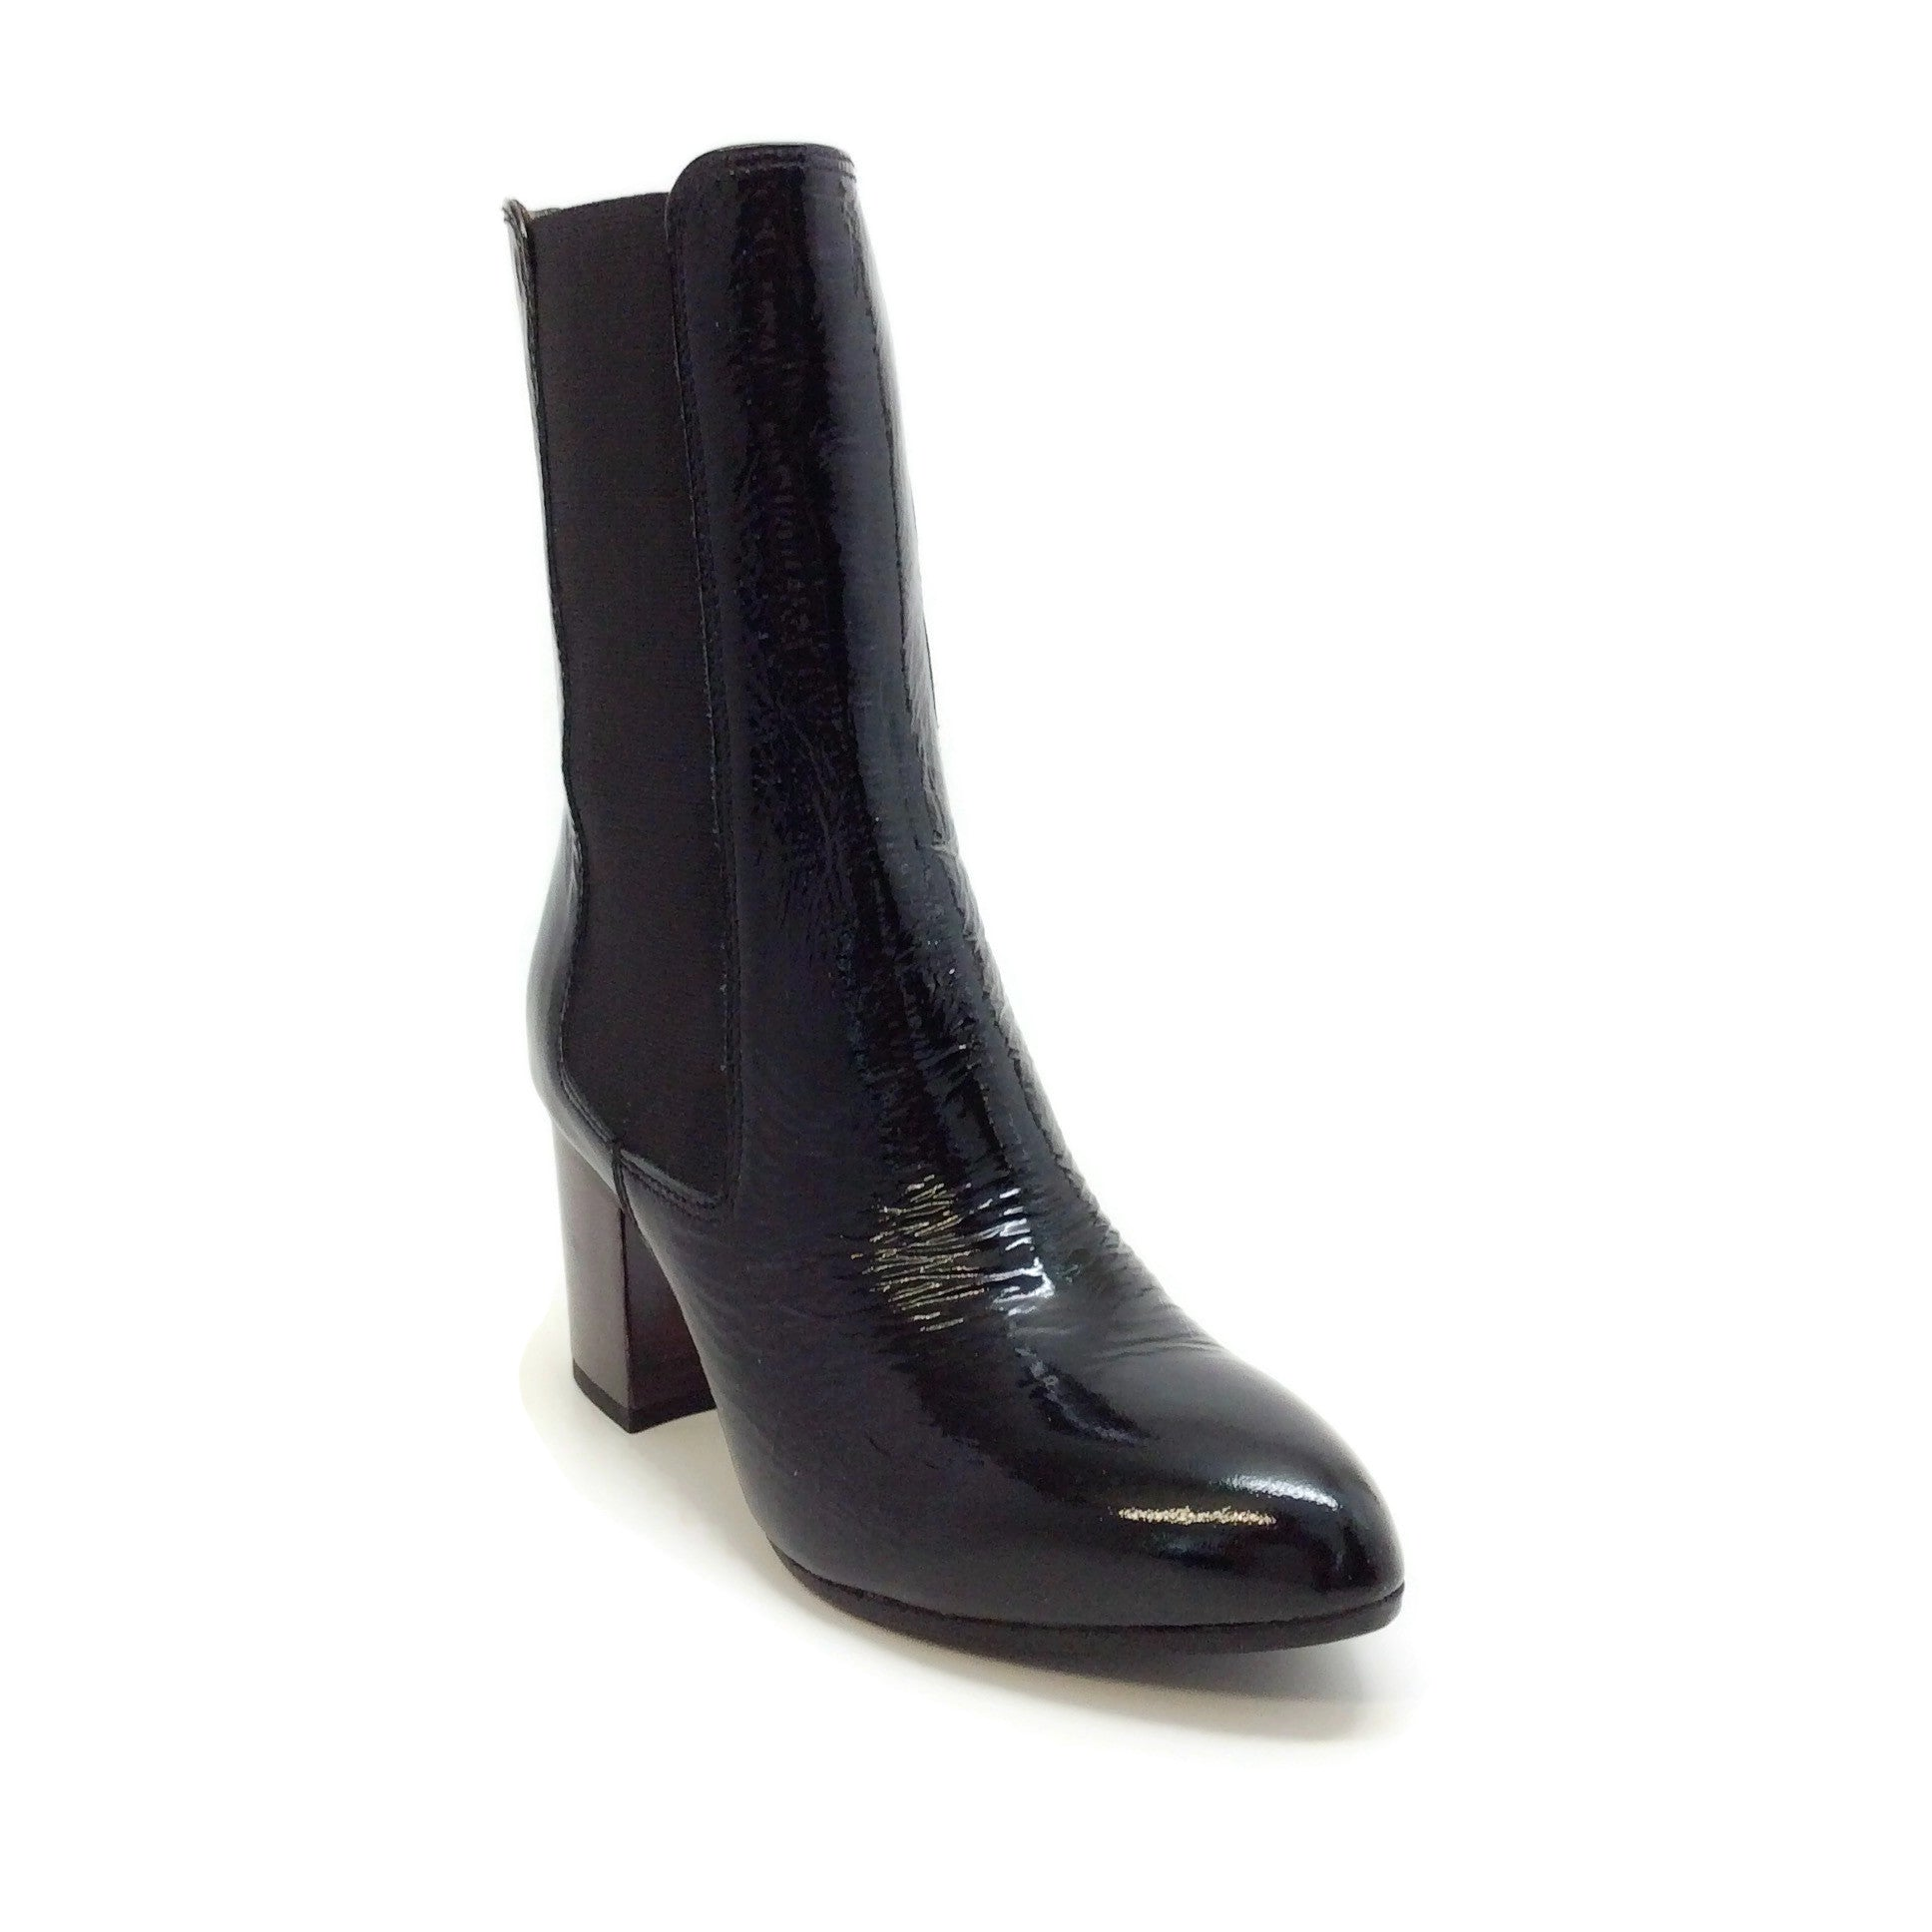 Sonia Rykiel Black Patent Middle Boots